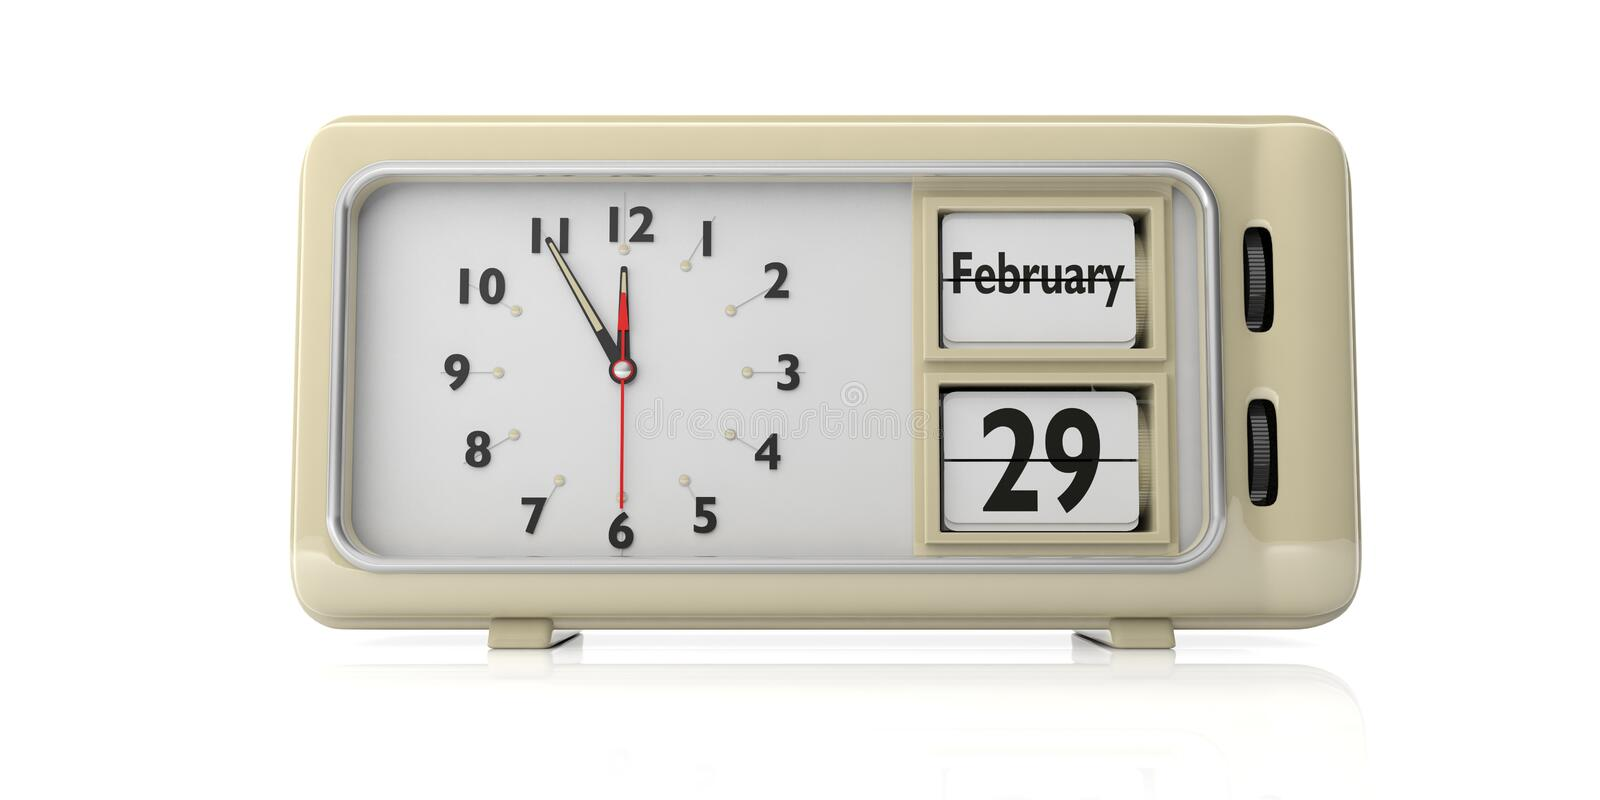 Leap Day 29 February on old retro alarm clock, white background, isolated, 3d illustration. Leap Day, 29 February date text on old retro vintage alarm clock vector illustration